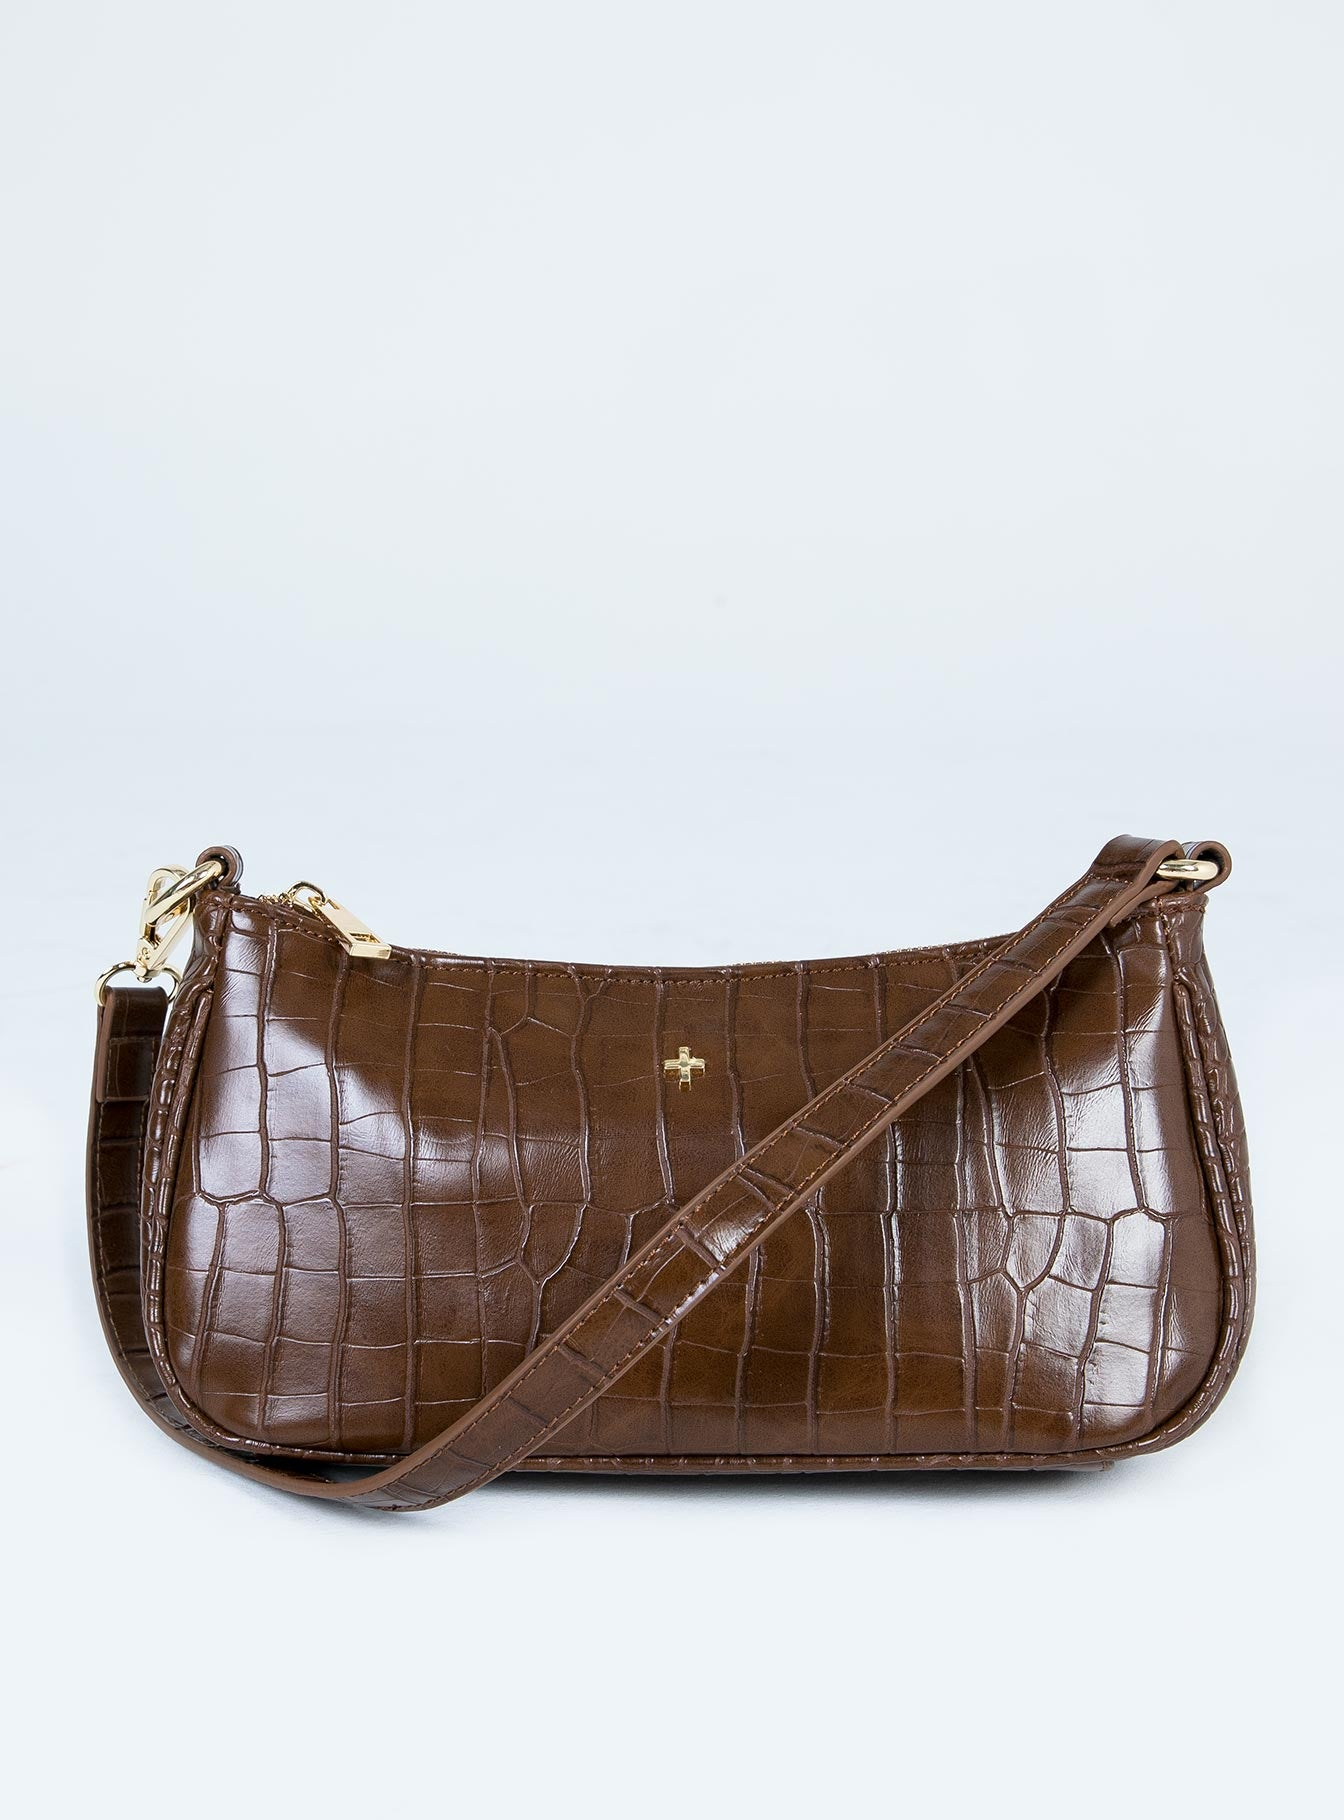 Peta & Jain Piper Bag Chocolate Croc